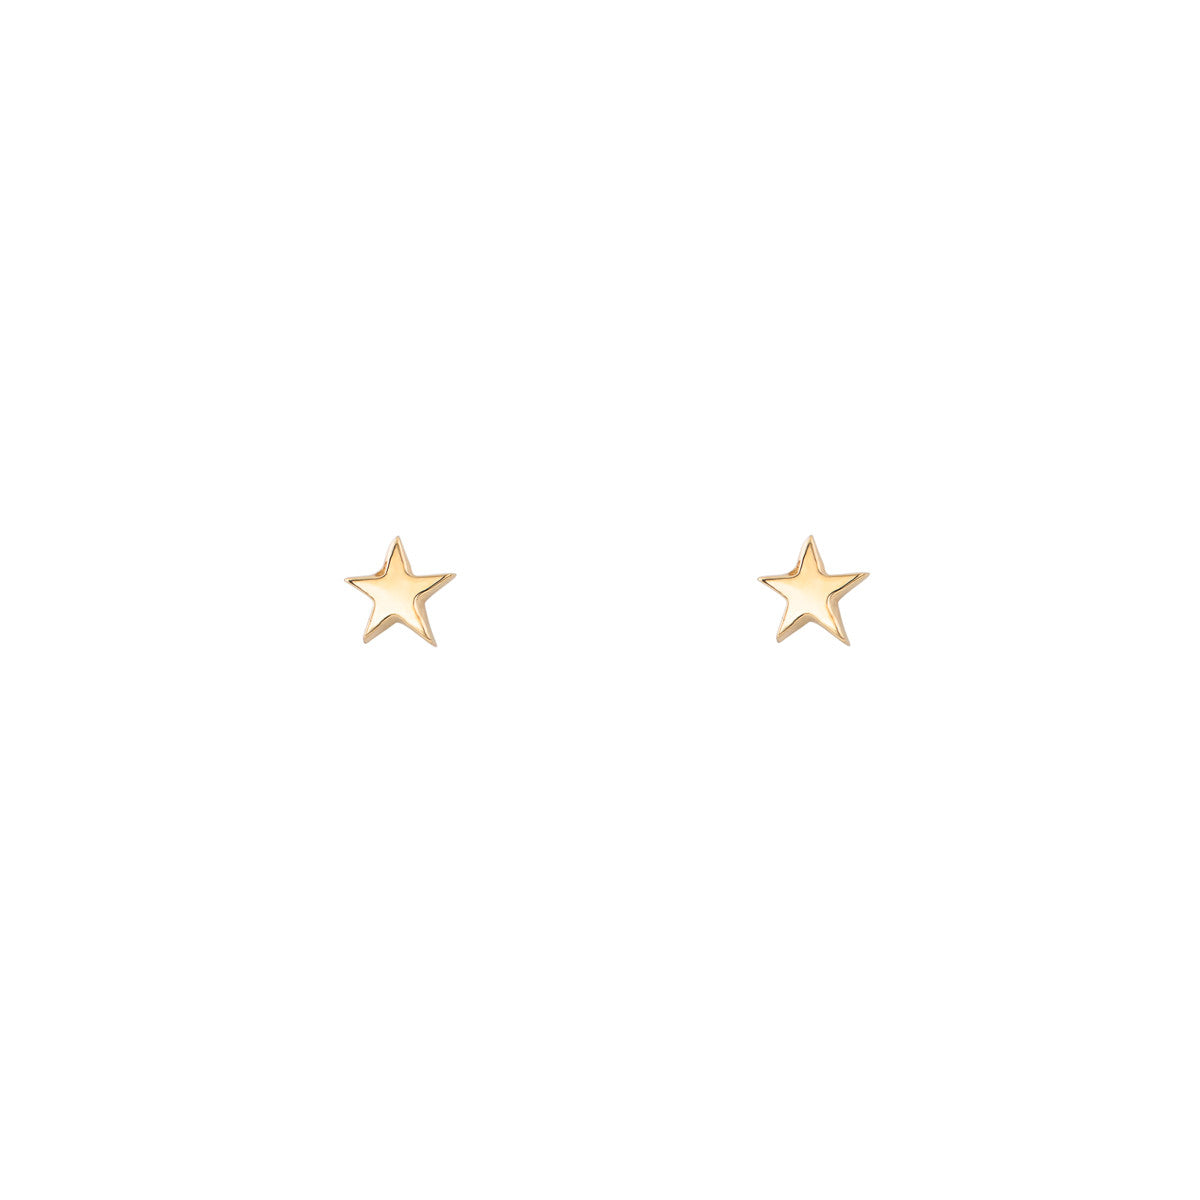 Gold Star Earrings - Phoenix Roze